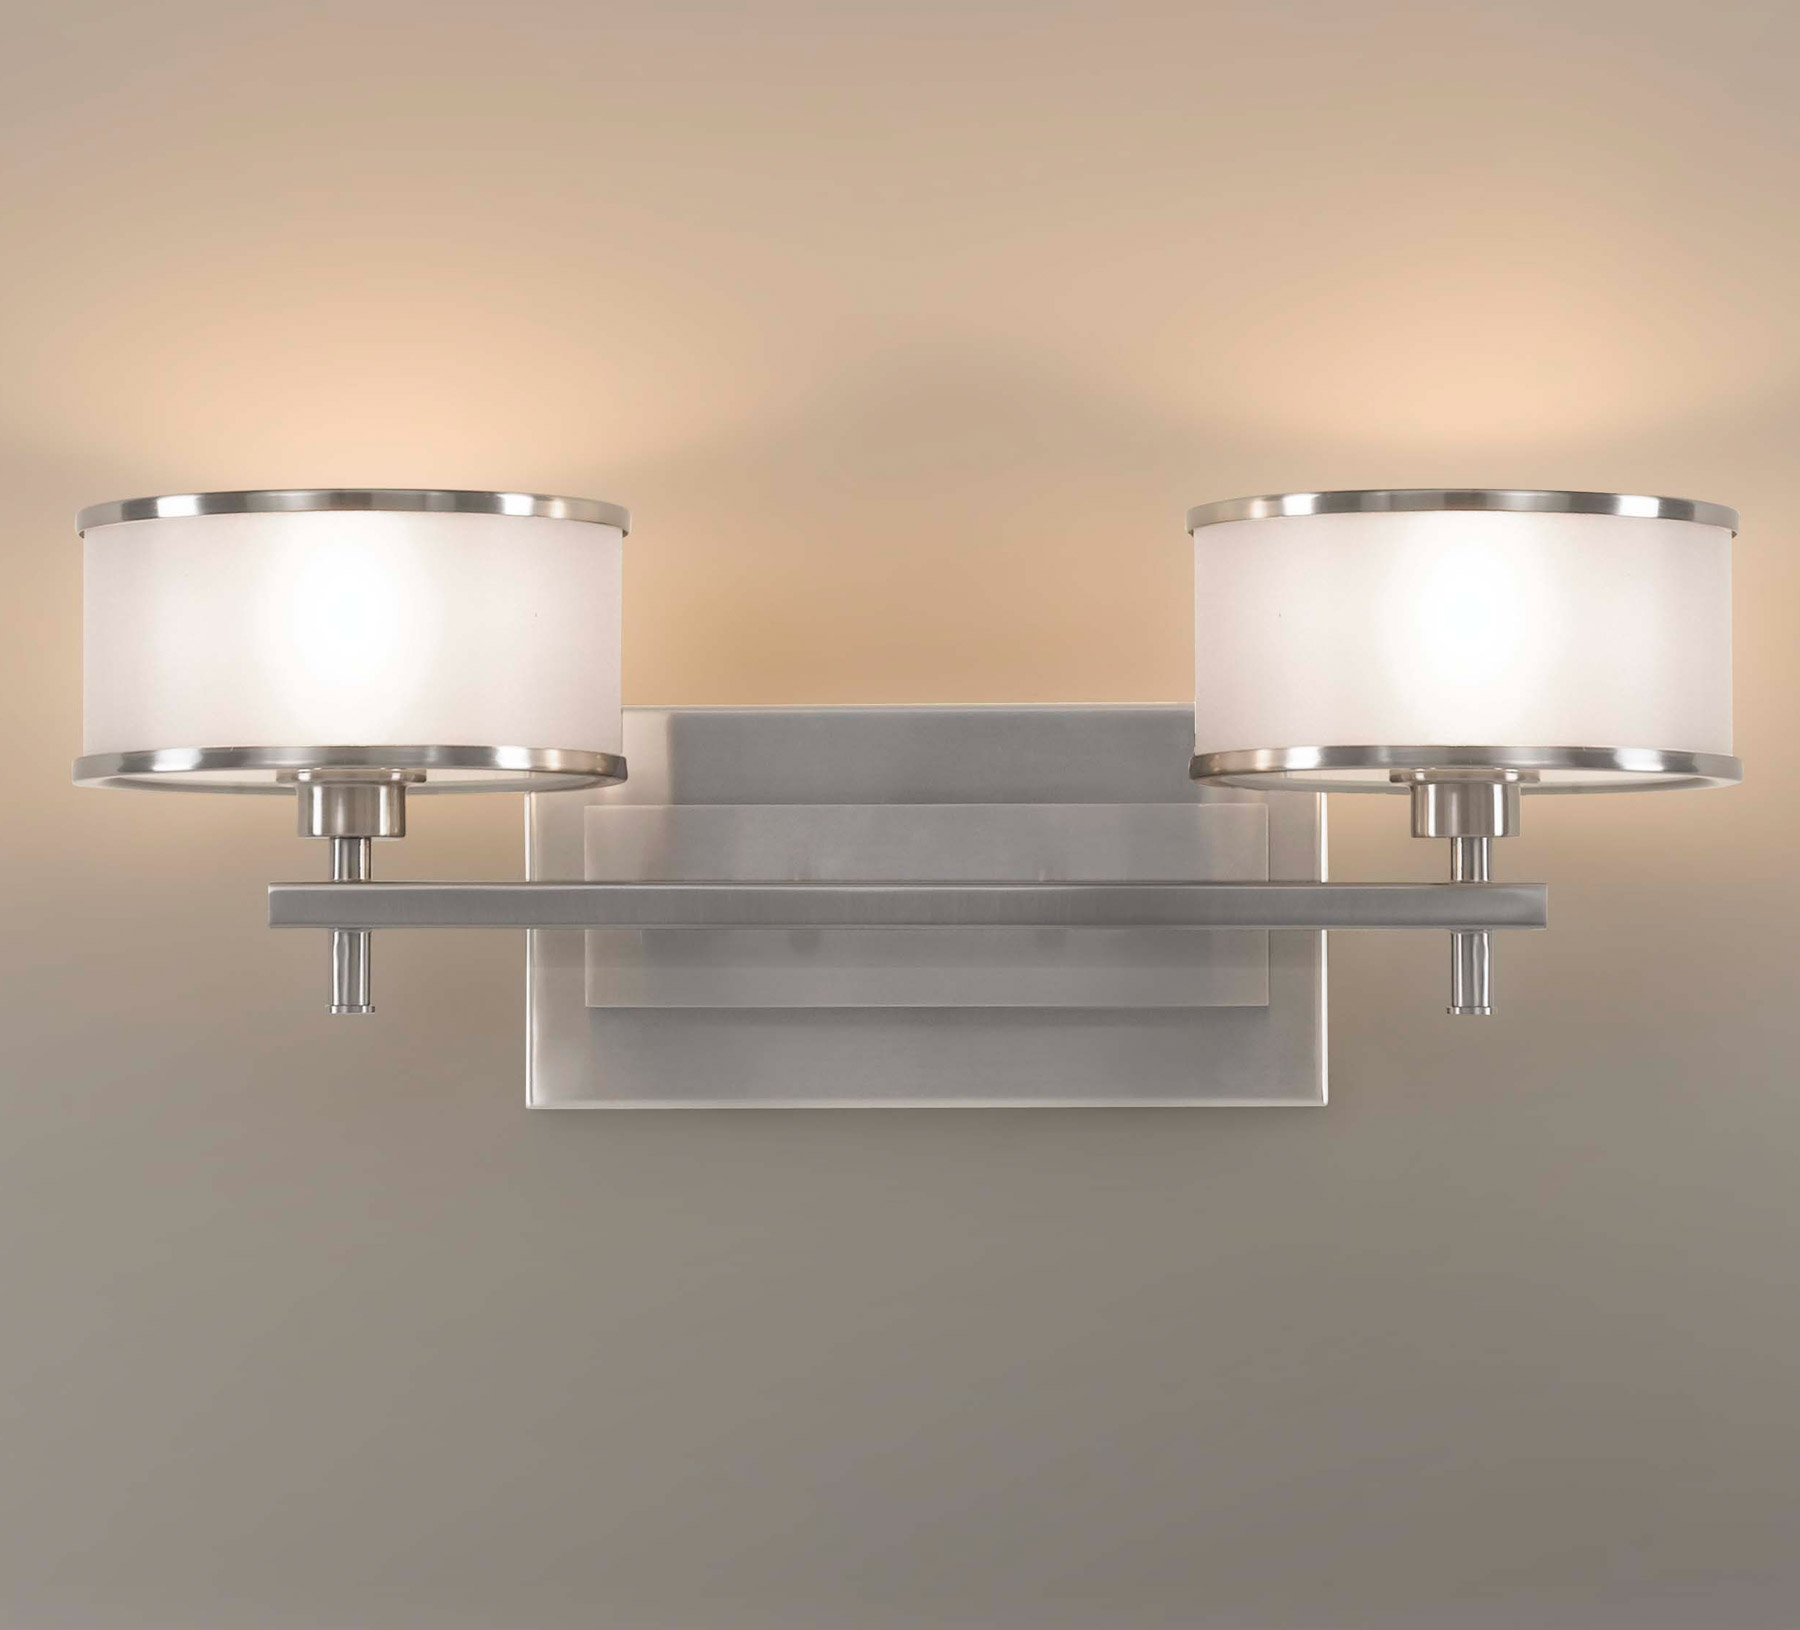 mirrors bathroom wall murray feiss vs13702 bs luxury vanity light 13702